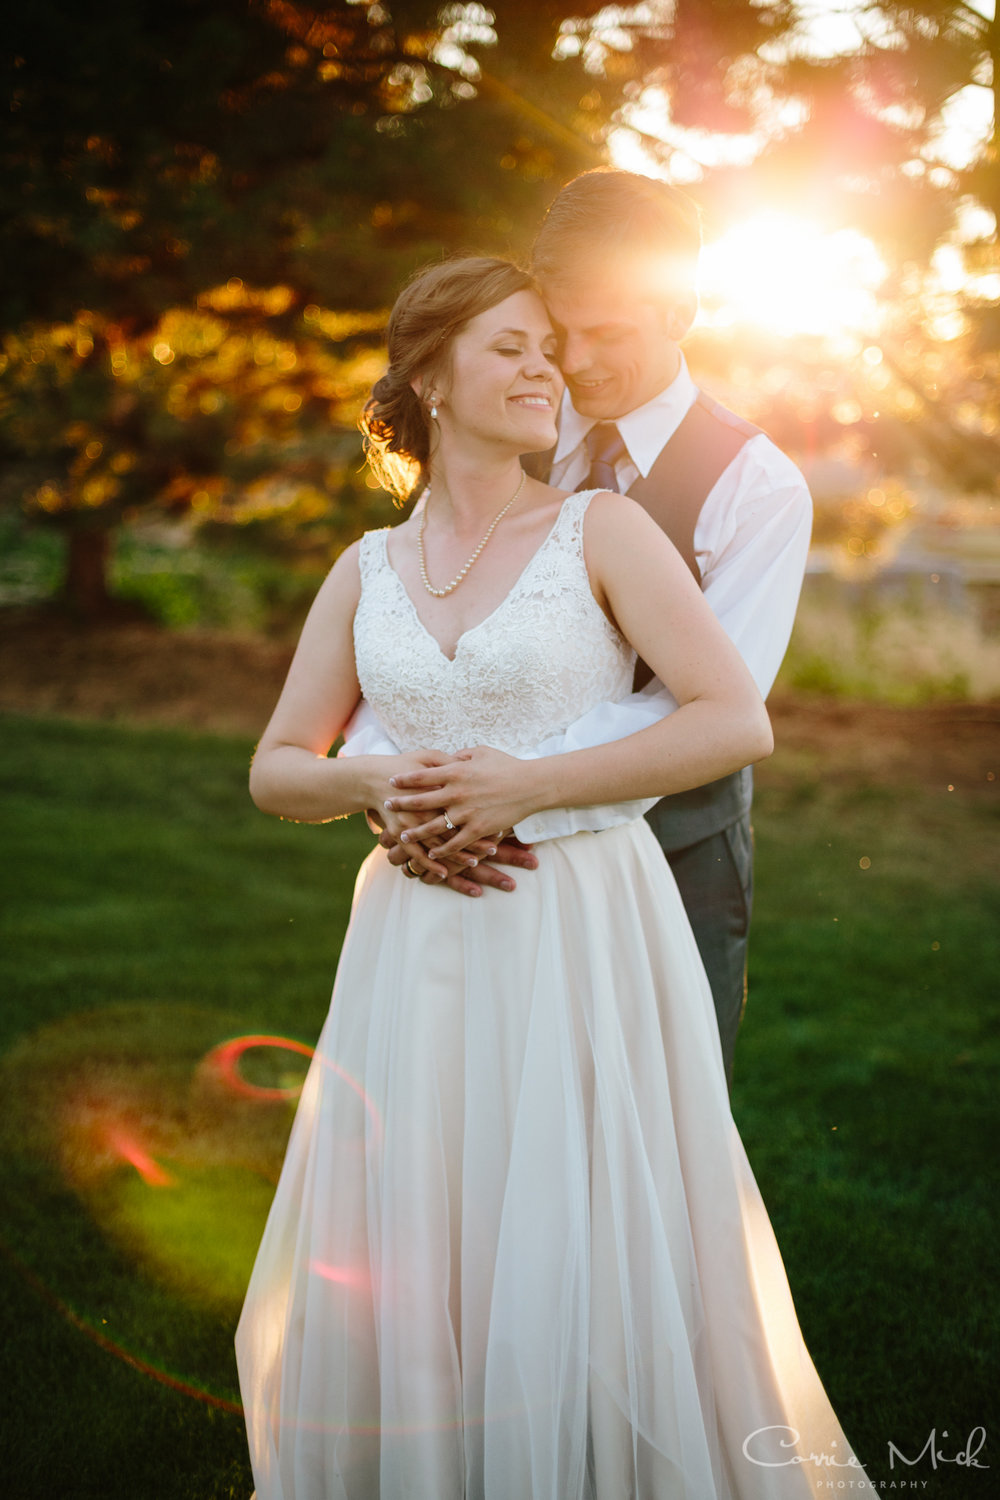 Jordan & Shantel Married - Idaho-1.jpg